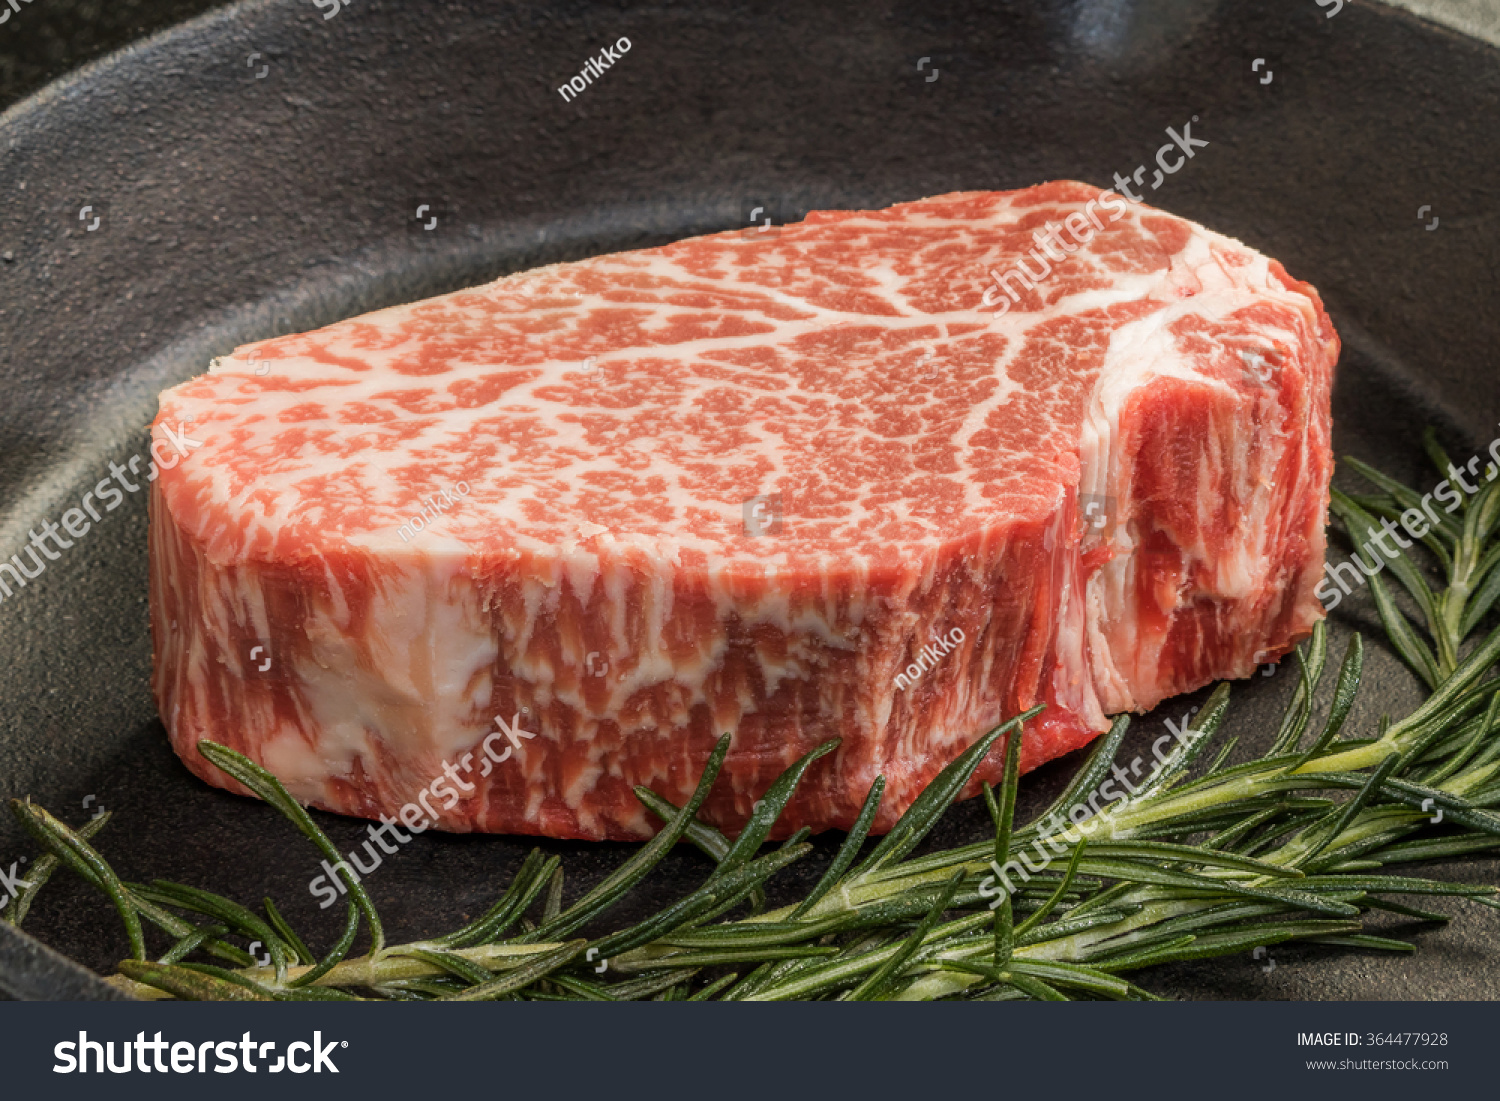 how to cook beef sizzle steak